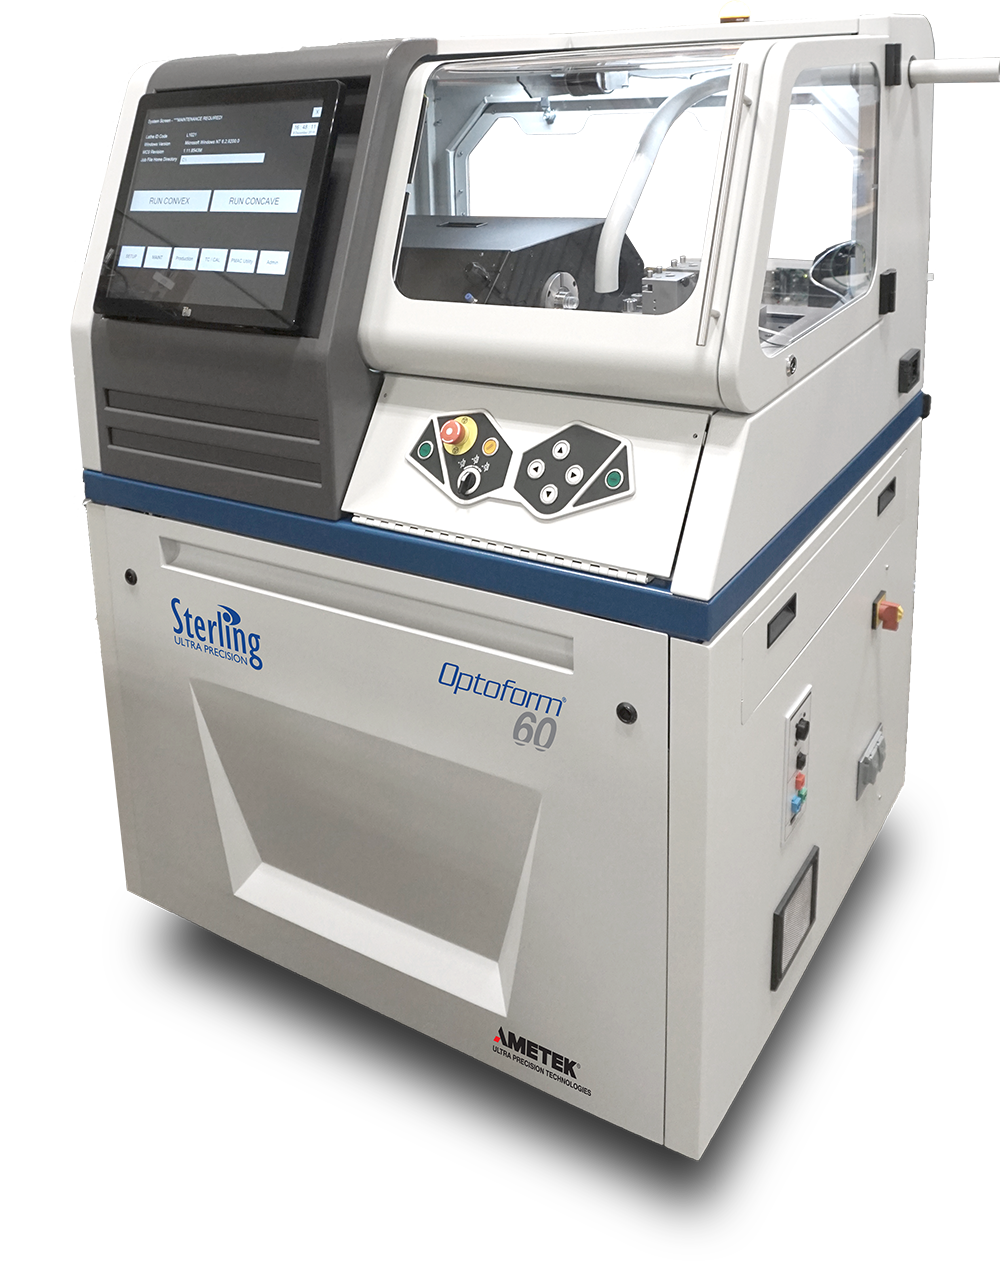 Optoform 60 ophthalmic lathe